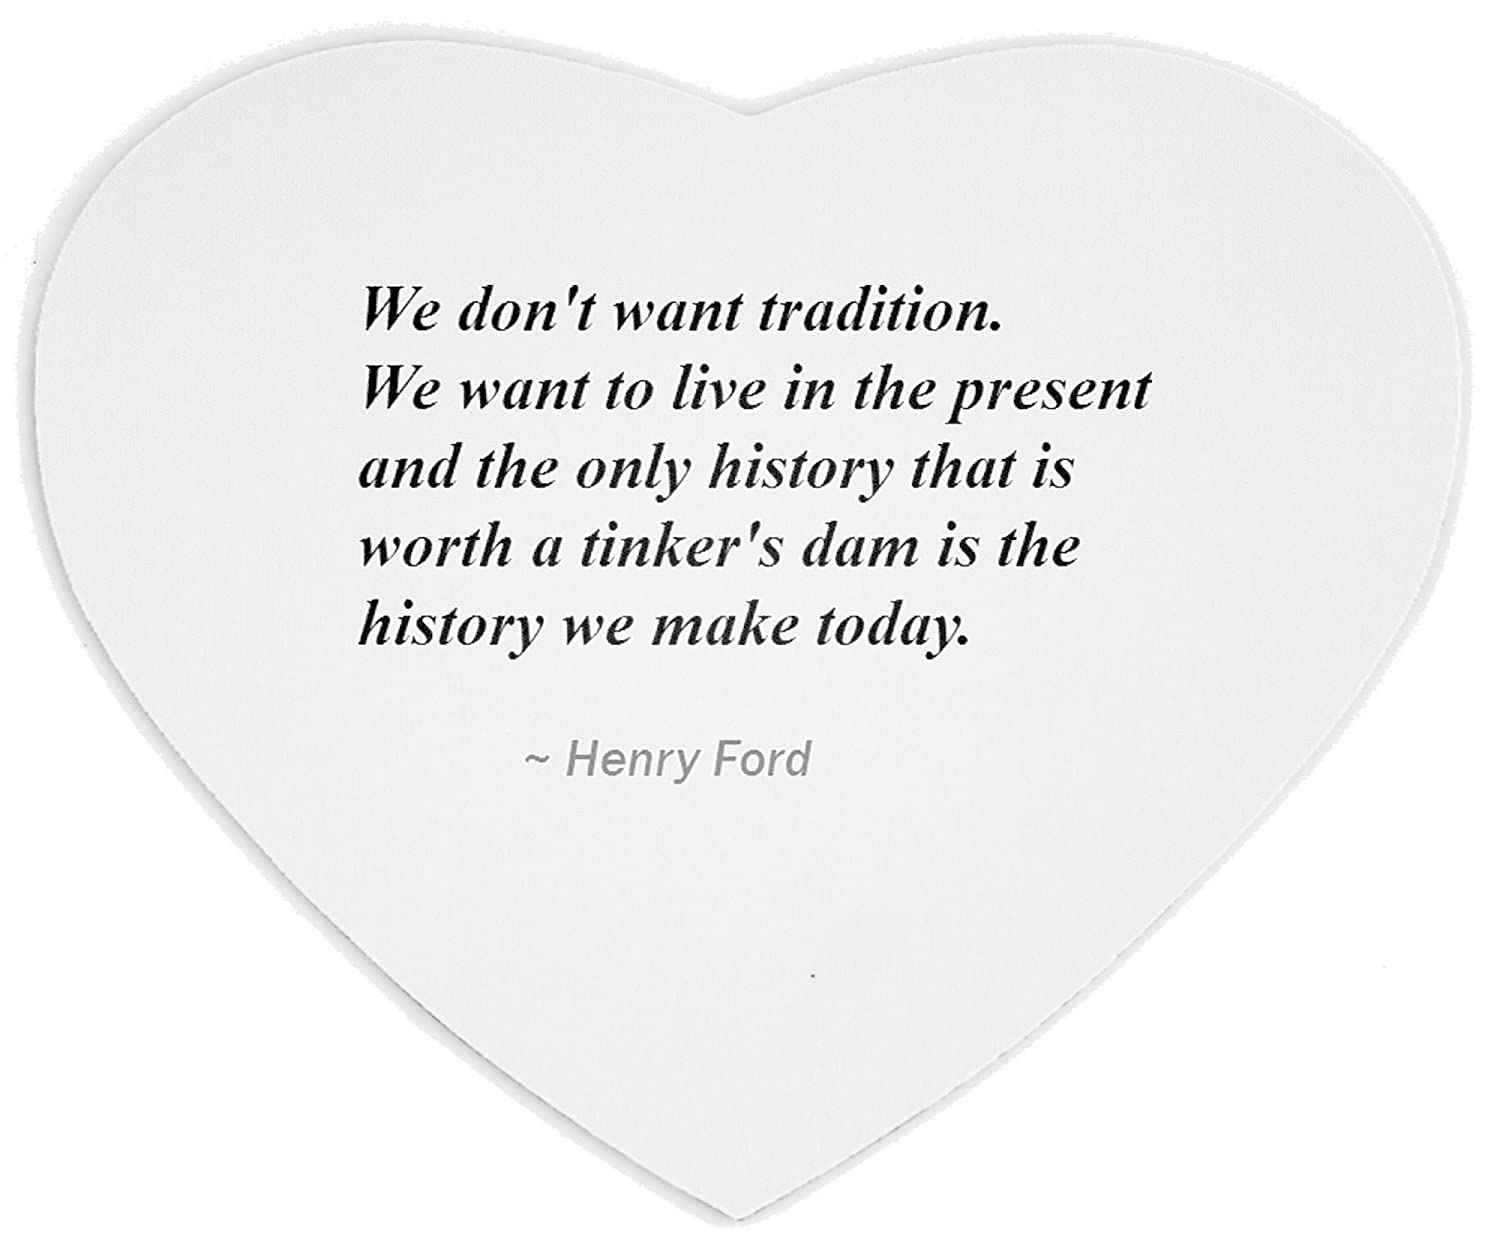 Amazon.com : Heartshaped Mousepad with We don't want tradition. We want to live in the present and the only history that is worth a tinker's dam is the ...